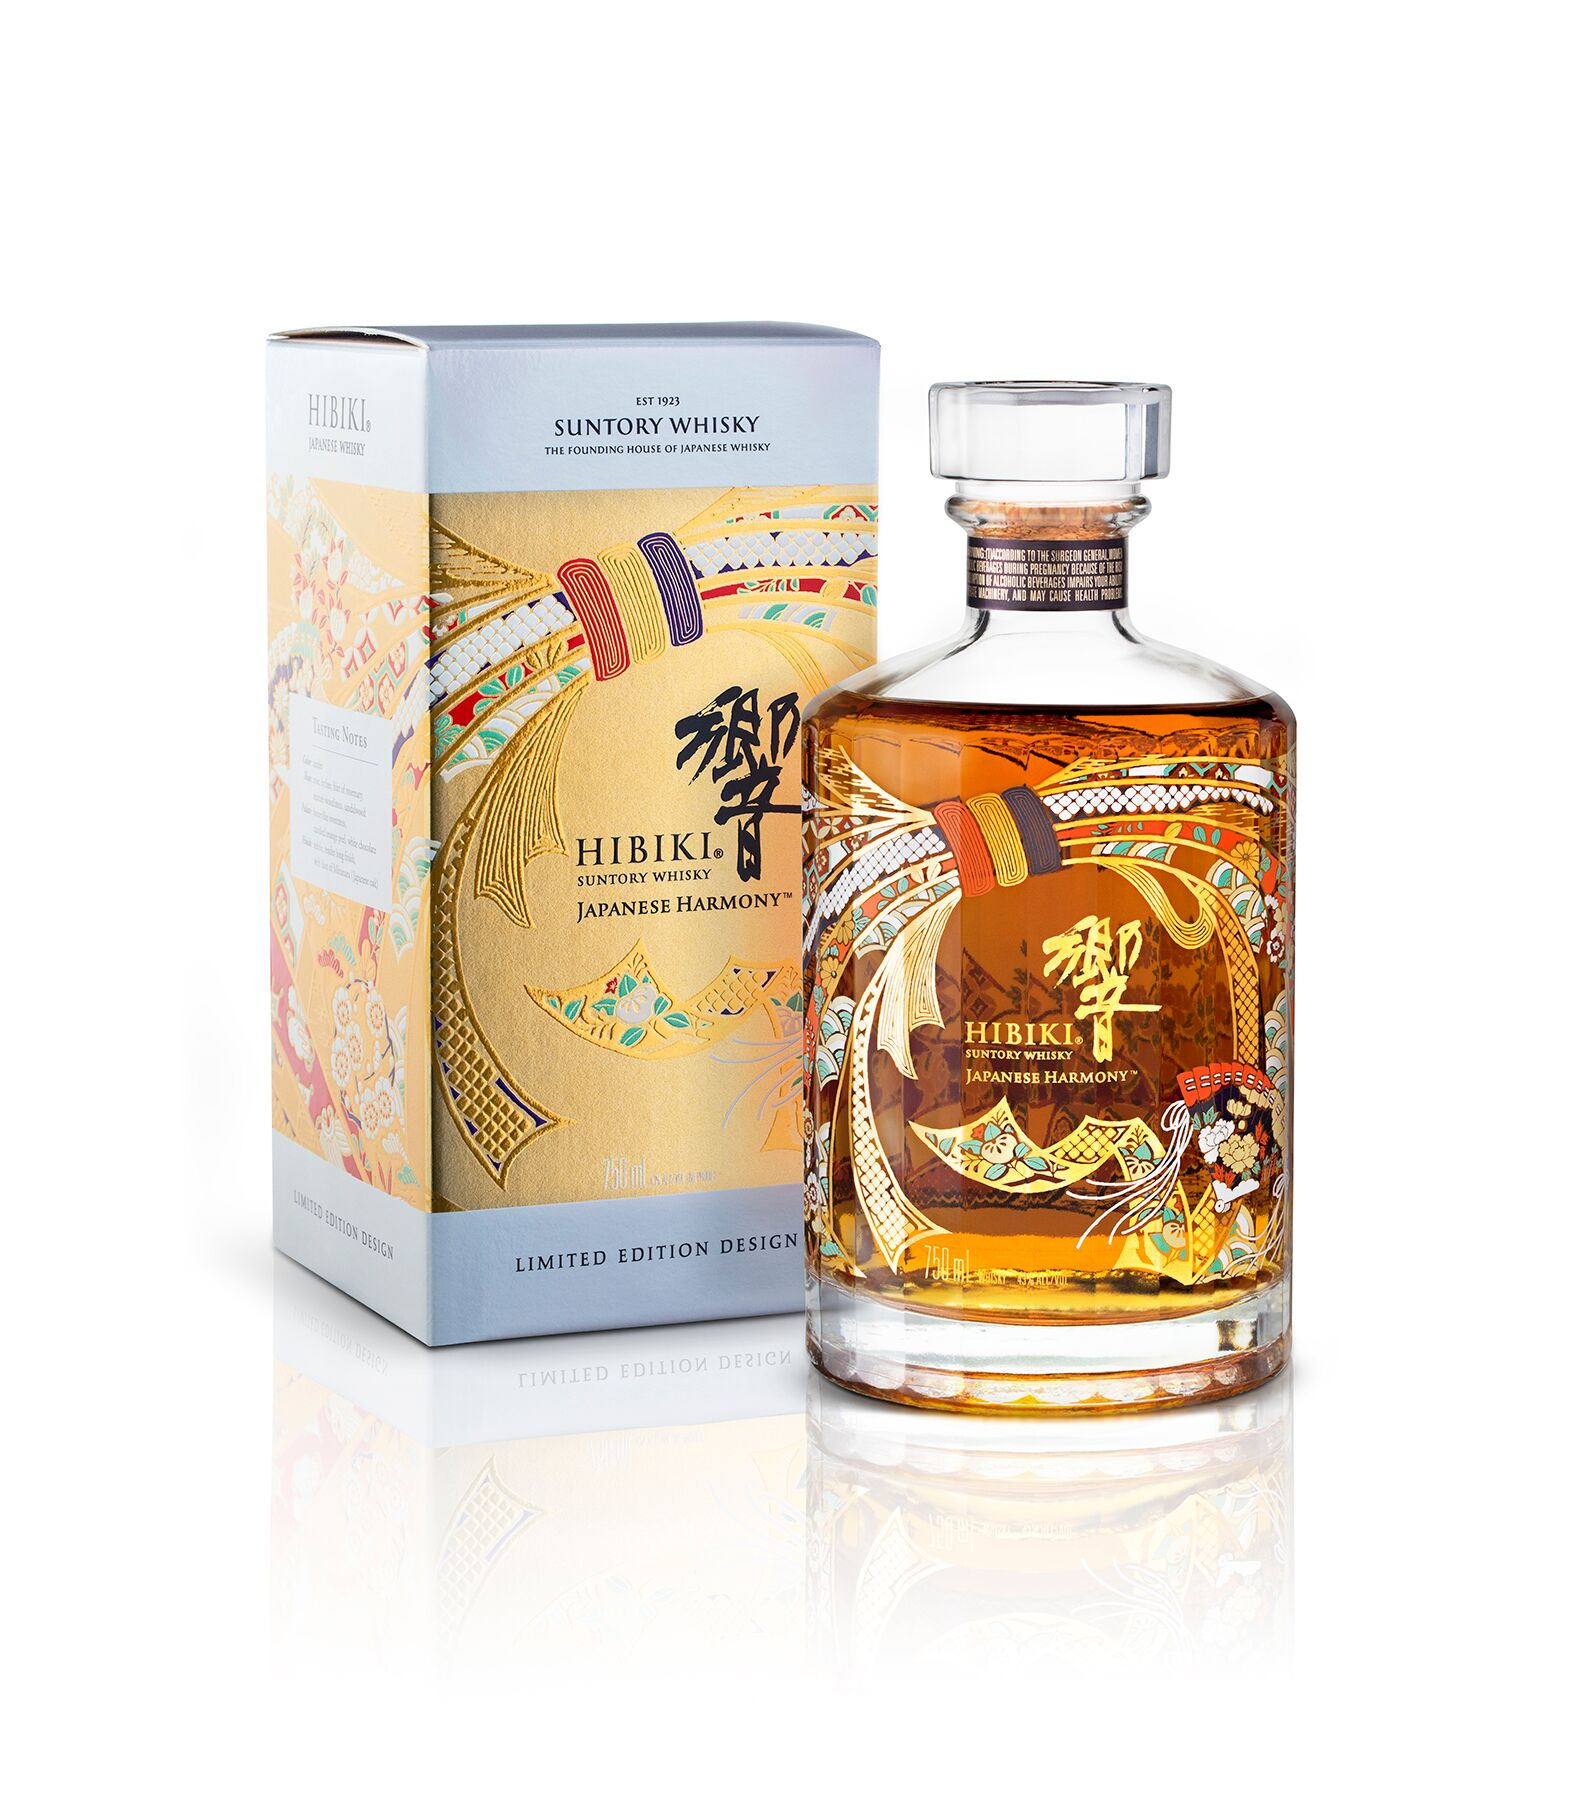 The limited edition Hibiki Japanese Harmony bottling marks the brand's 30th anniversary